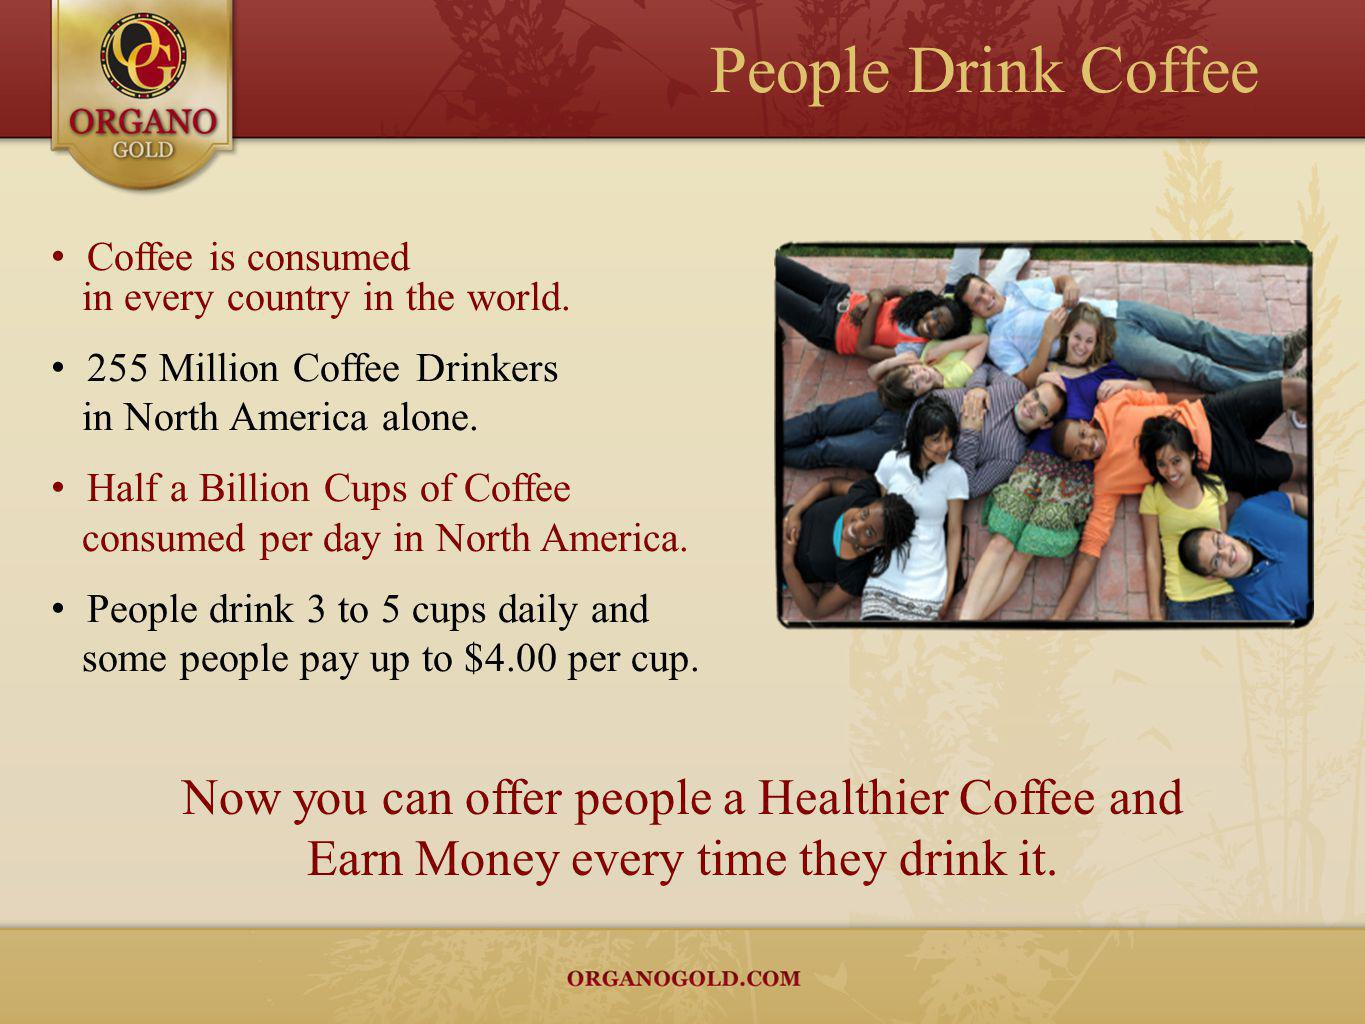 People Drink Coffee Now you can offer people a Healthier Coffee and